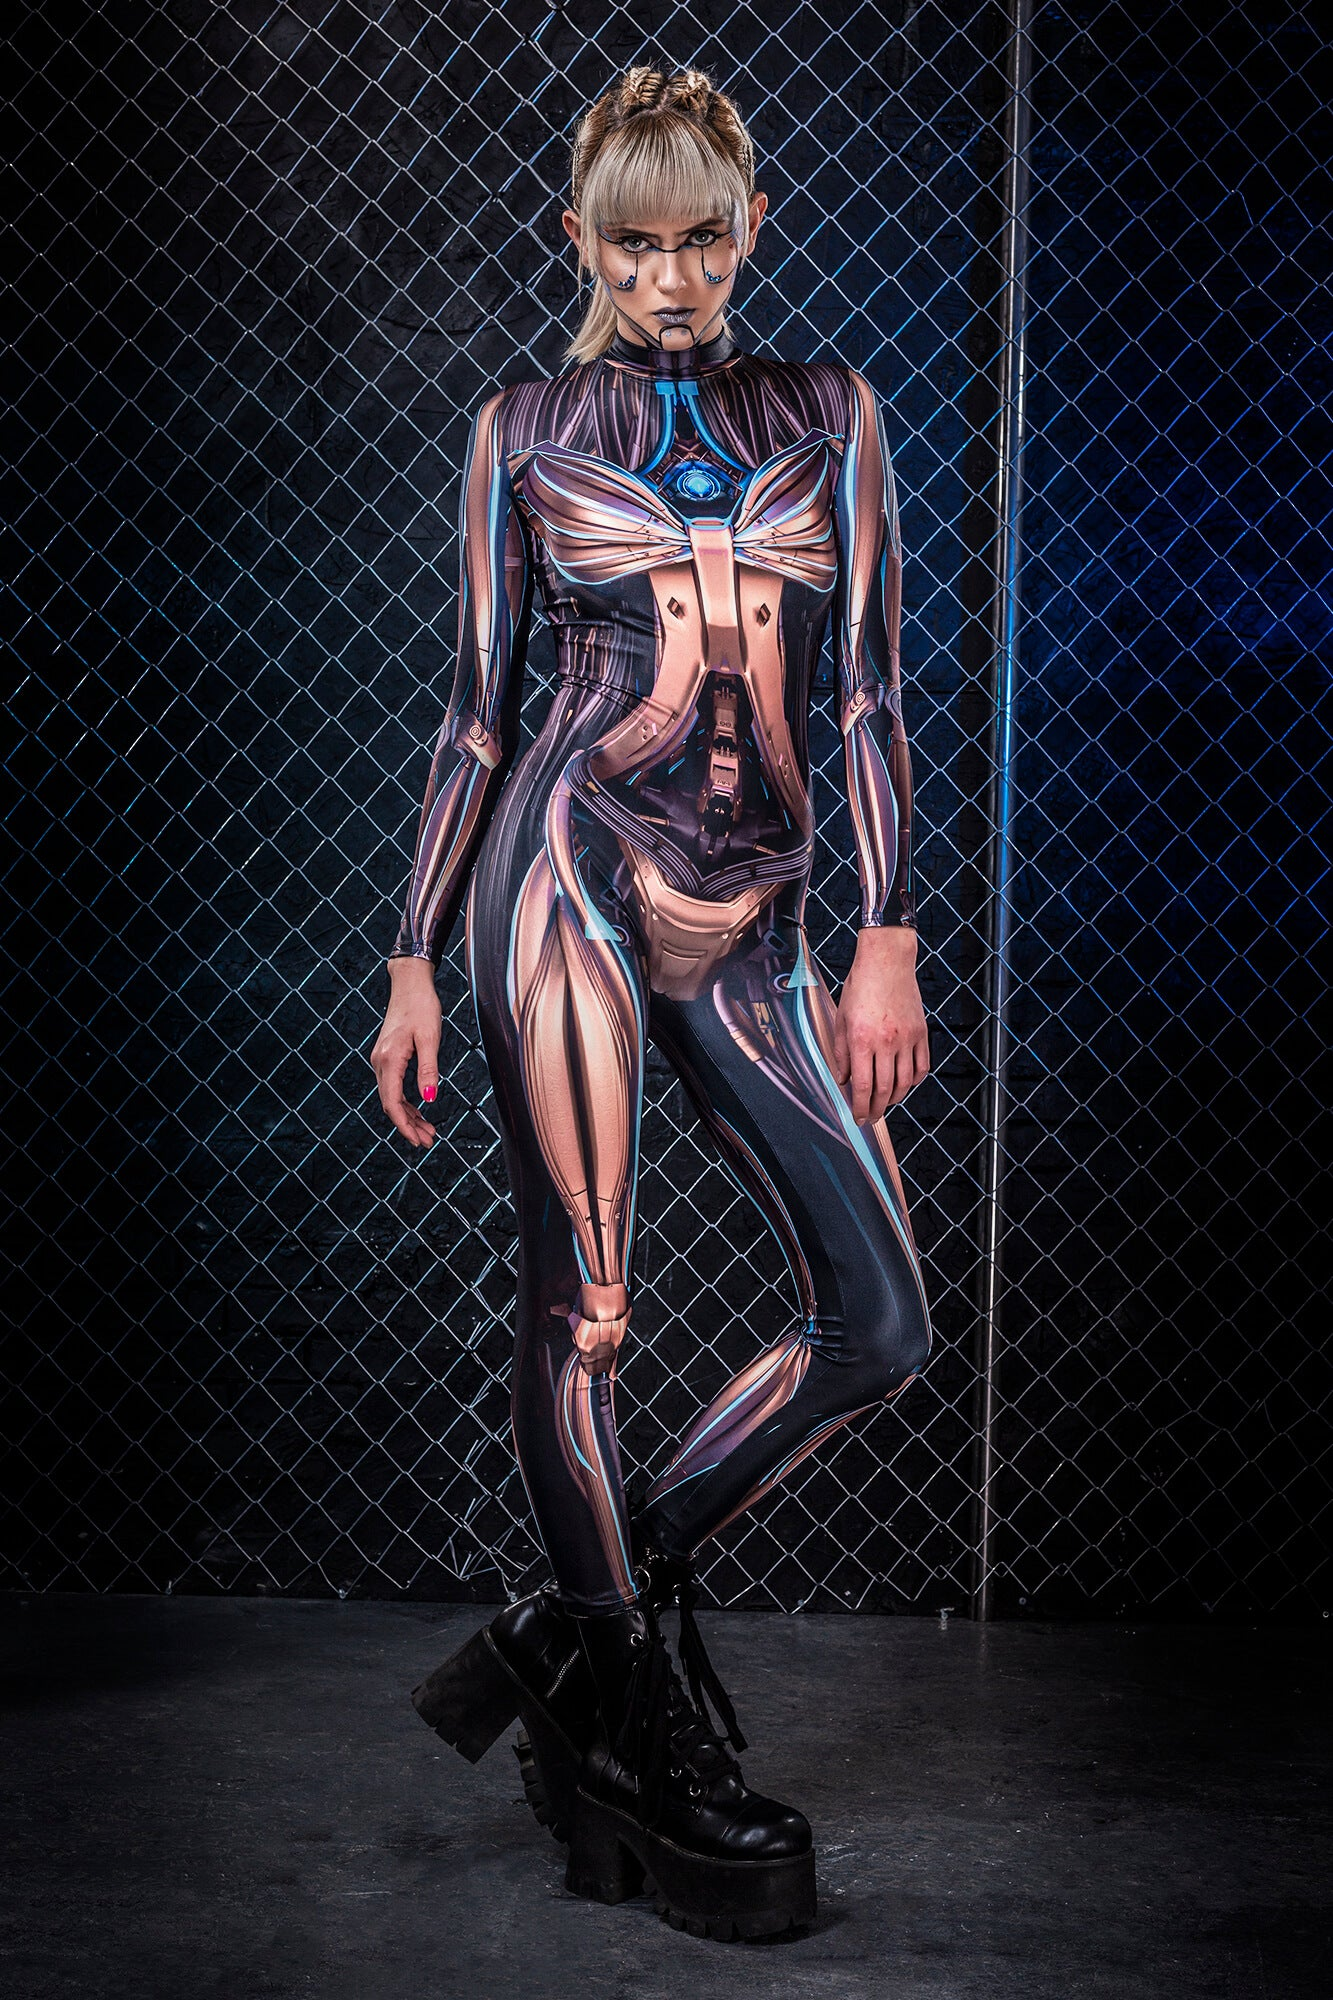 Golden CyberLink Costume Bodysuit >> BADINKA